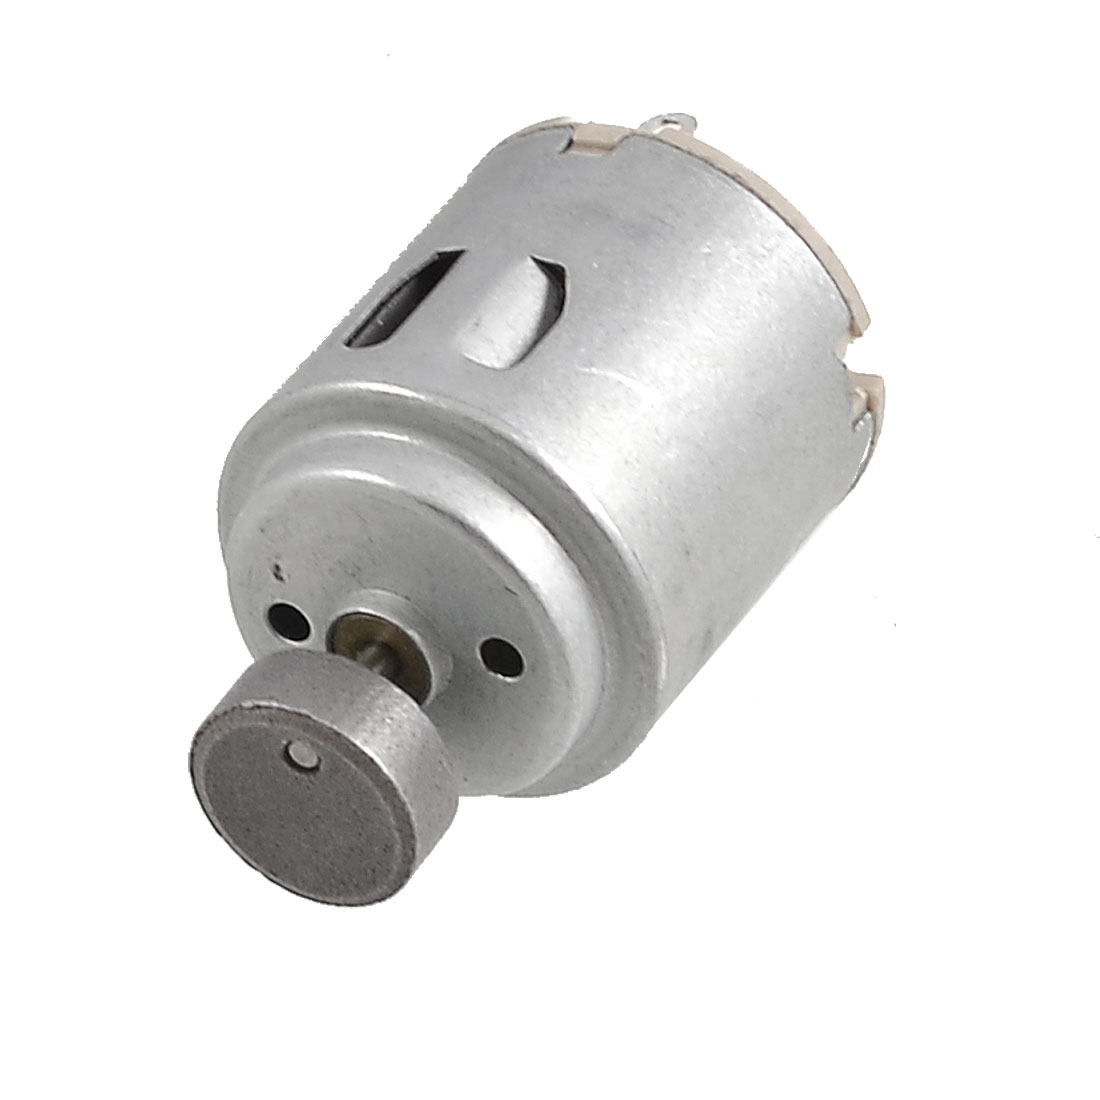 4-5V-15000RPM-Output-Speed-2-Pin-0-12A-DC-Micro-Vibration-Motor